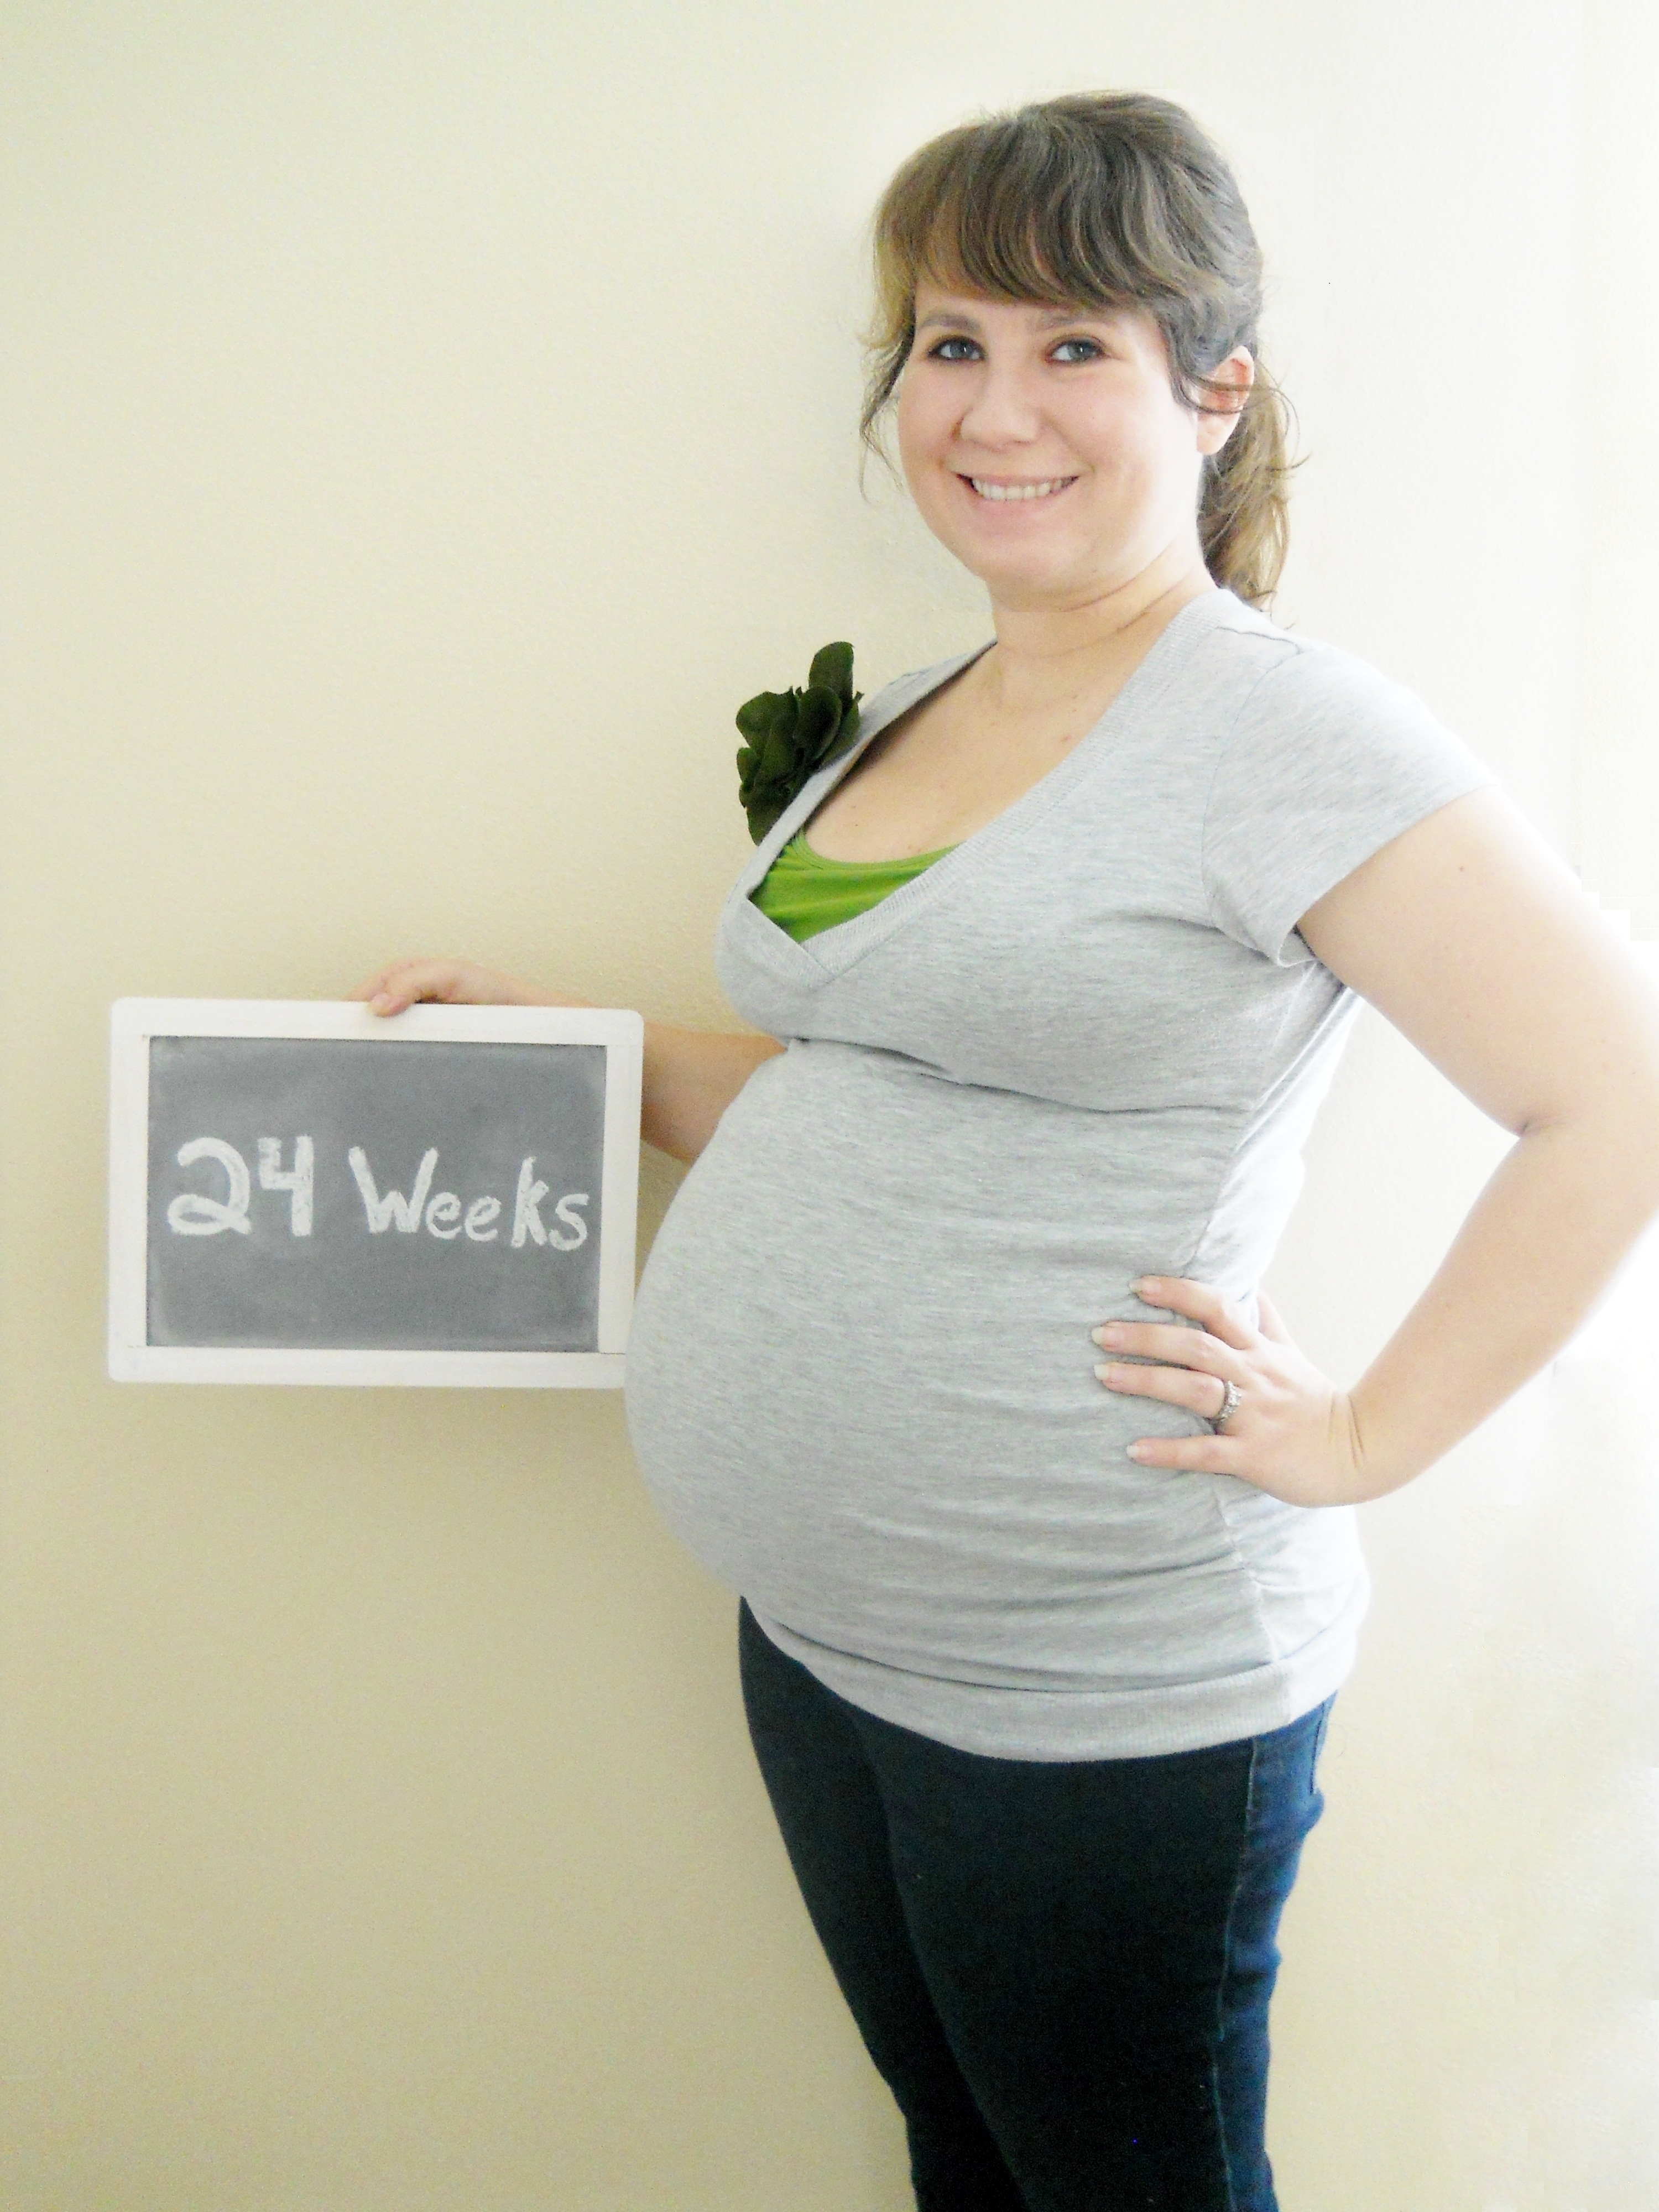 6(ish) Months Pregnant | Living Well on the Cheap